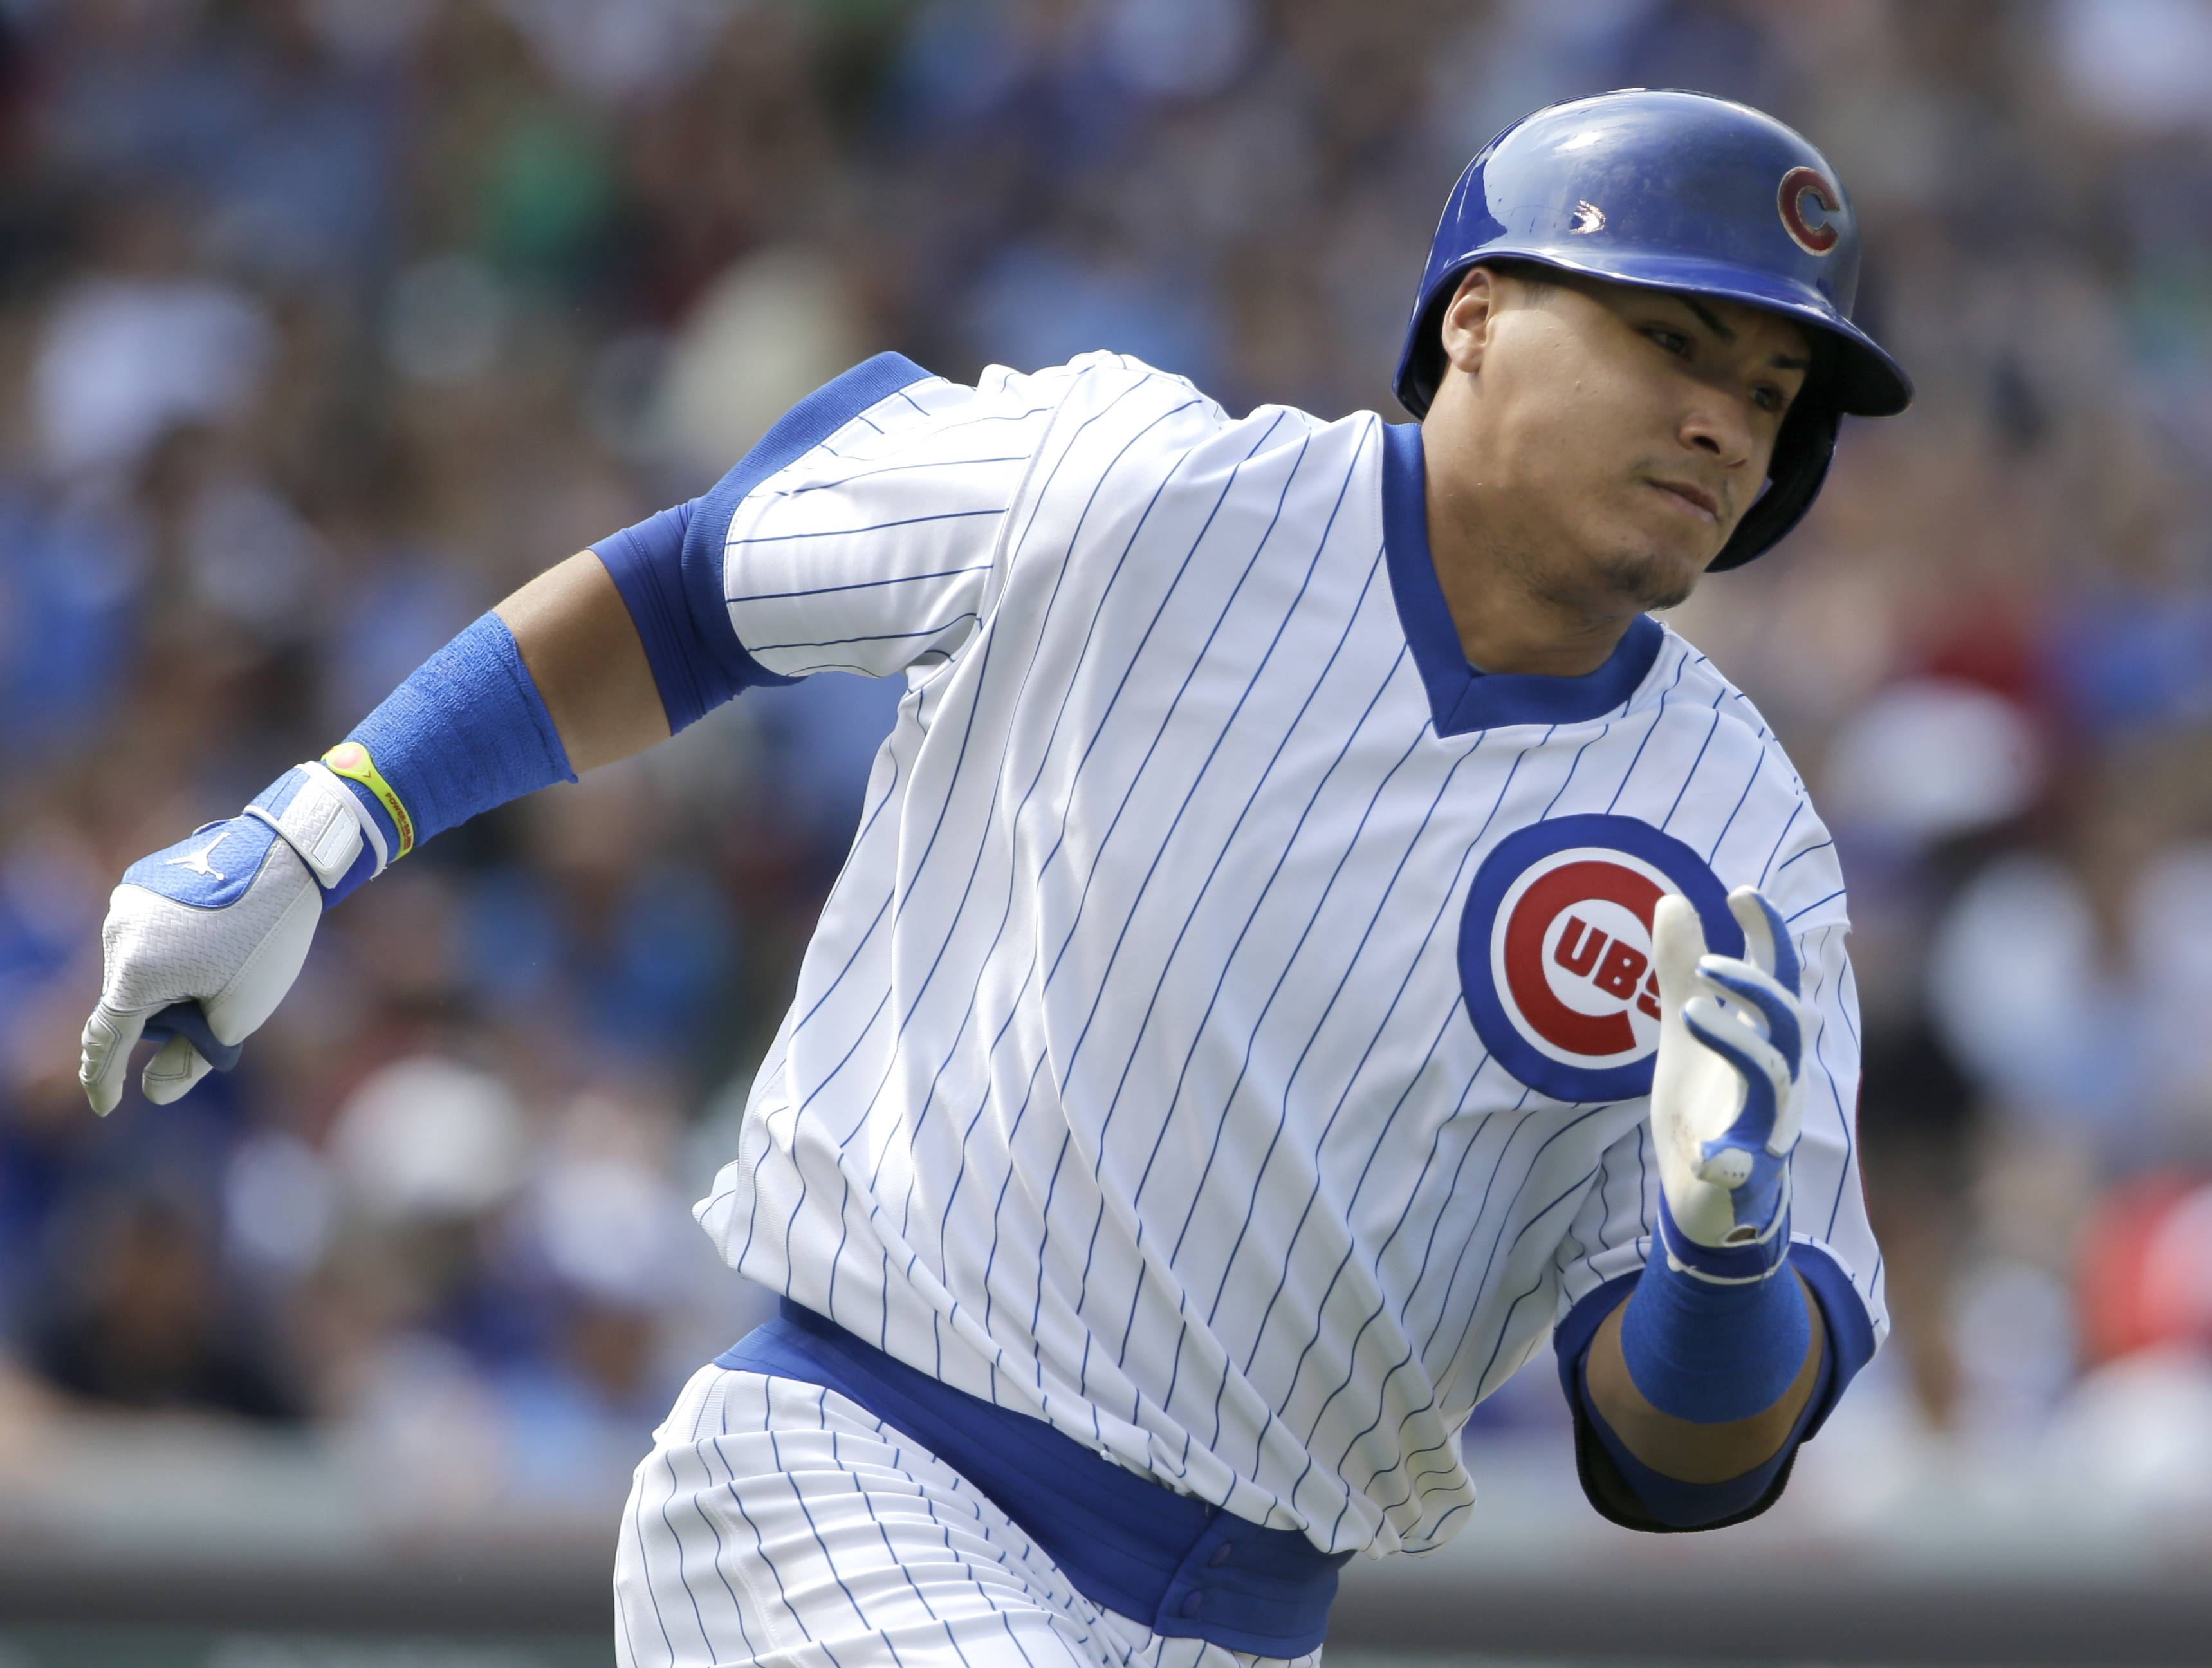 Even Cubs broadcaster Len Kasper was surprised when the team promoted Javier Baez last week from Class AAA.